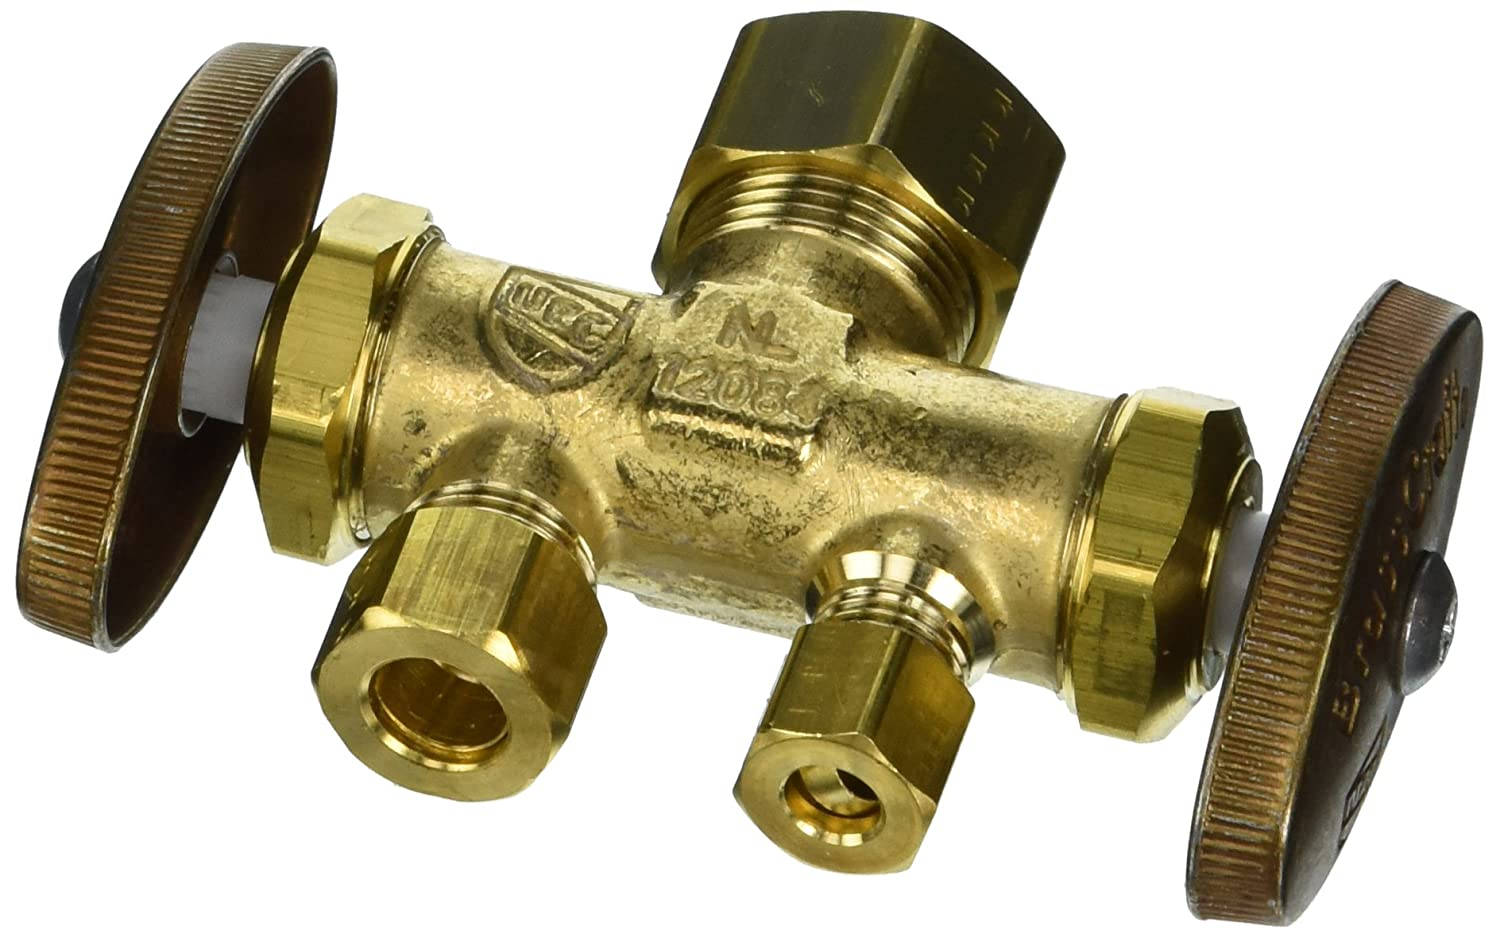 "BrassCraft CR1900DVSX R 1/2"" Nom Comp Inlet x 3/8"" O.D. Comp x 1/4"" O.D. Comp Dual Outlet Dual Shut-Off Multi-Turn Straight Valve"